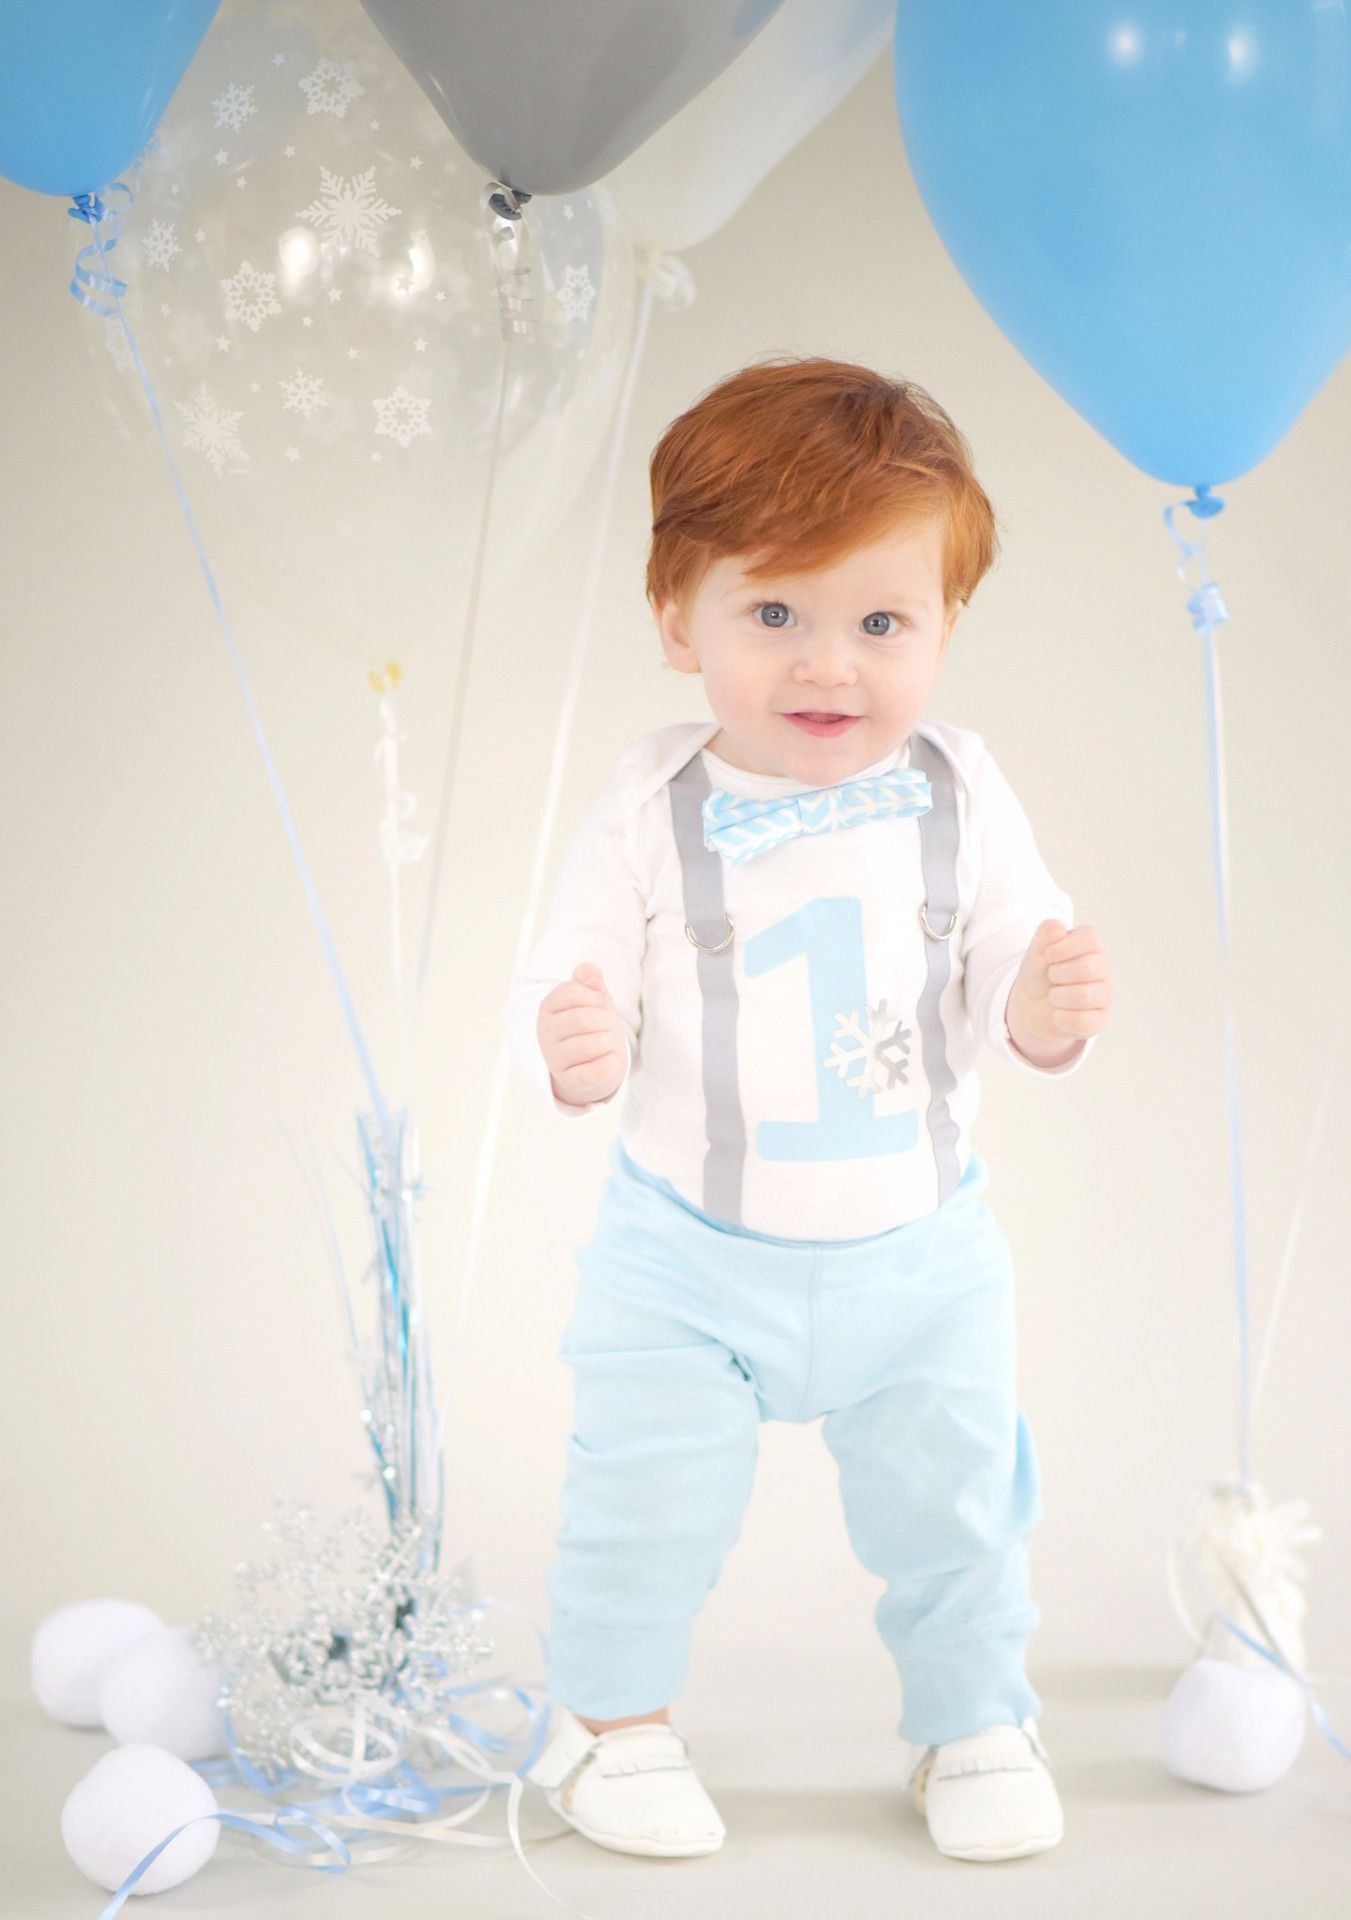 Baby Boy Cake Smash Ideas Winter Onederland Boys first